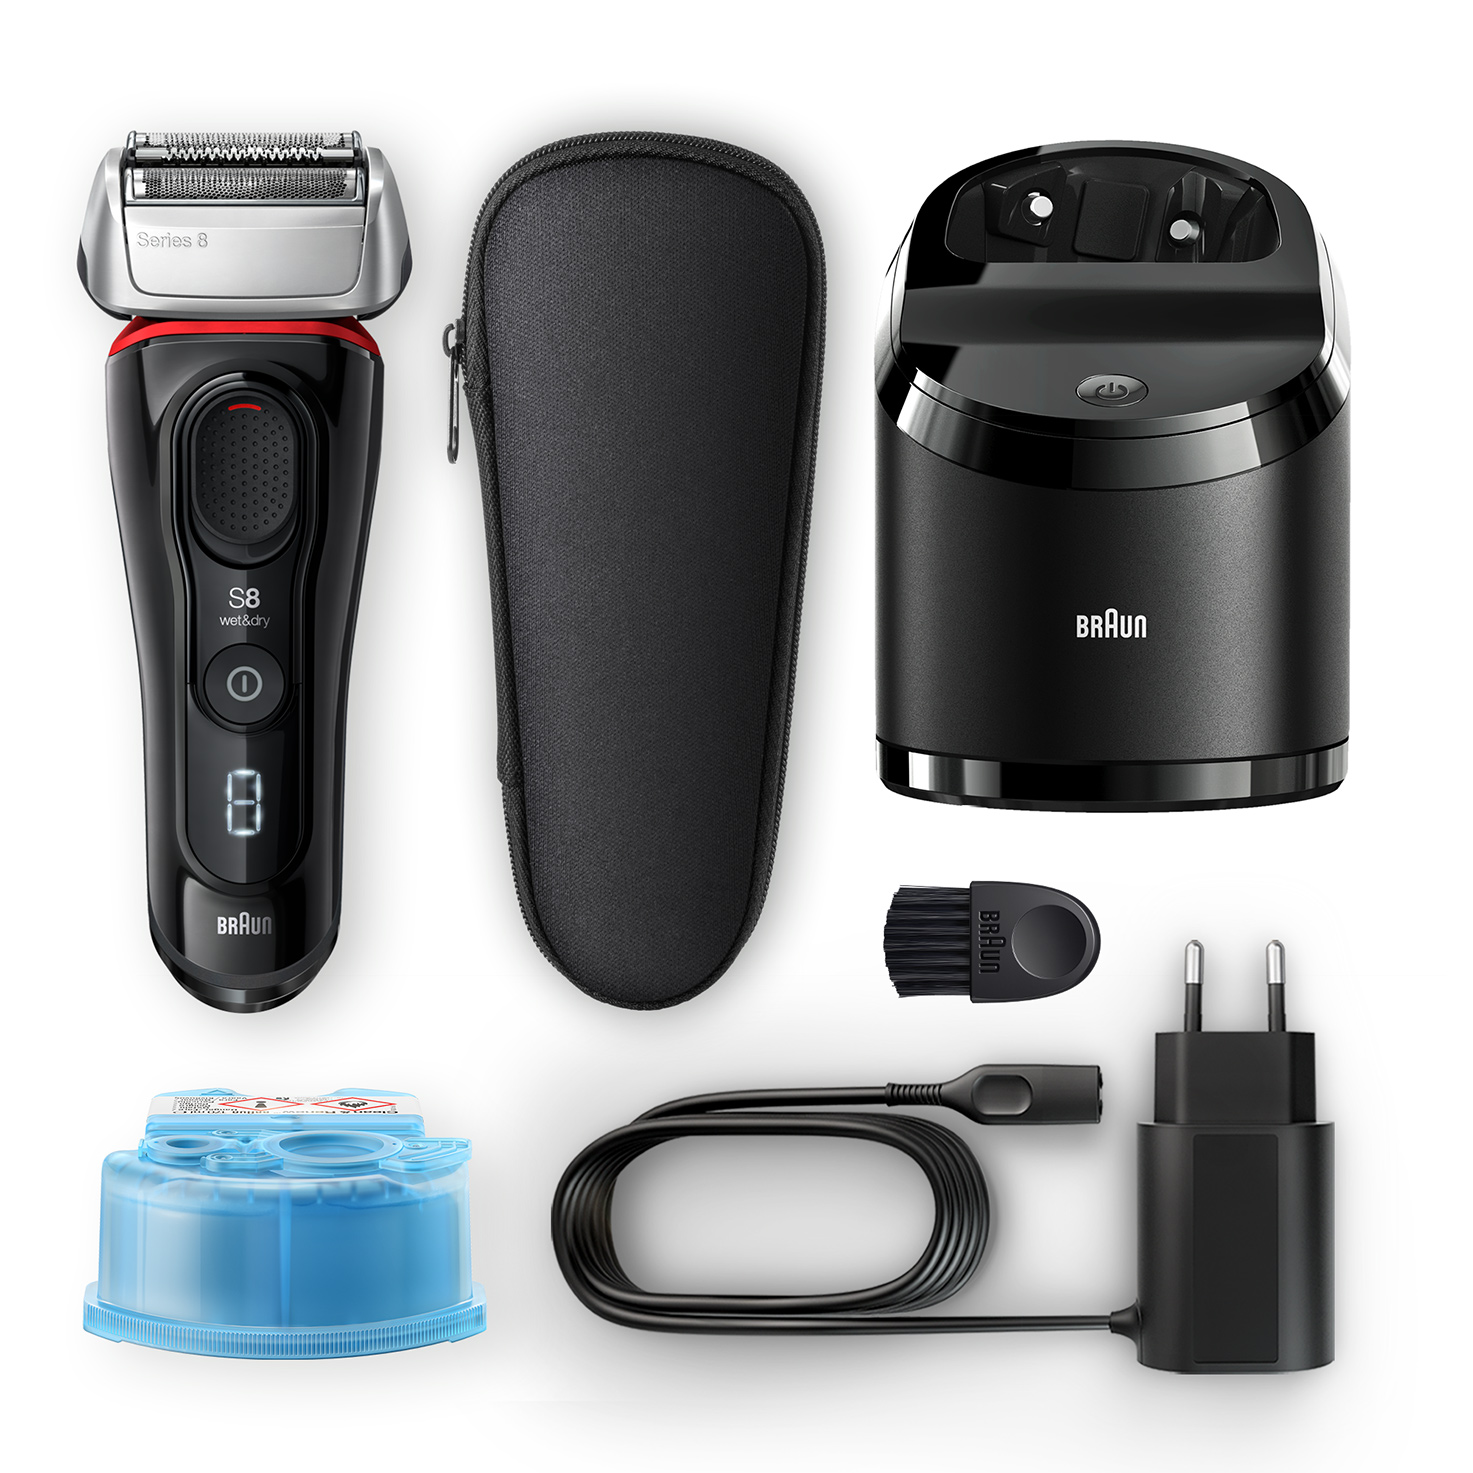 Series 8 8360cc shaver - What´s in the box